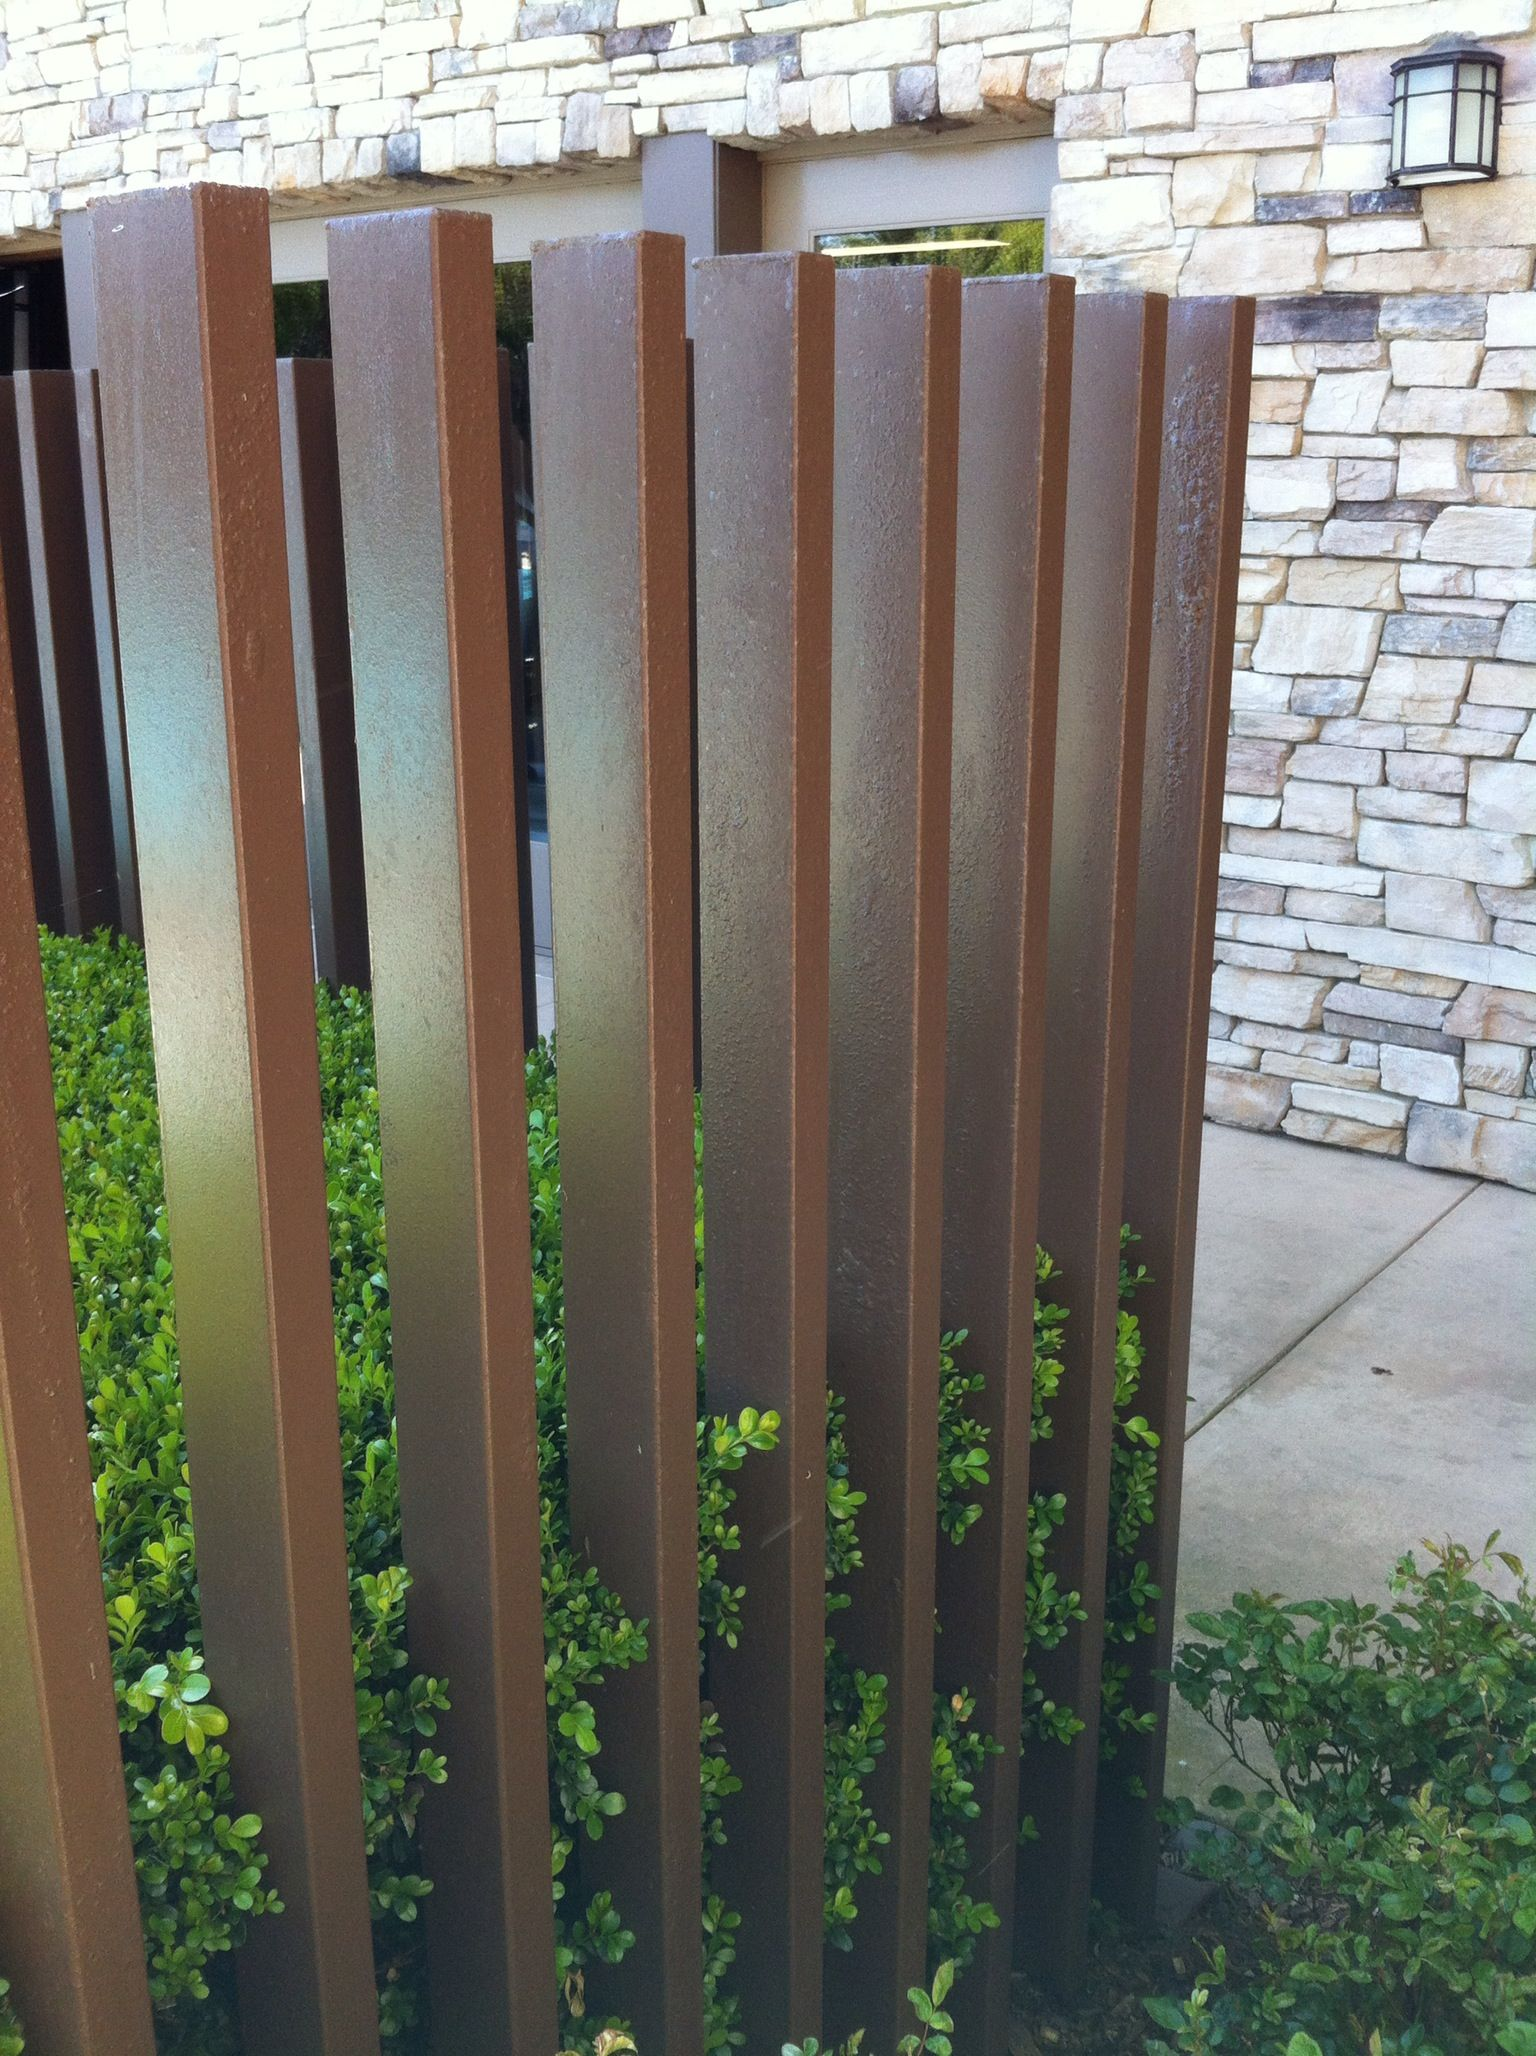 Metal Fence Protection Yet Can Be Seen Through